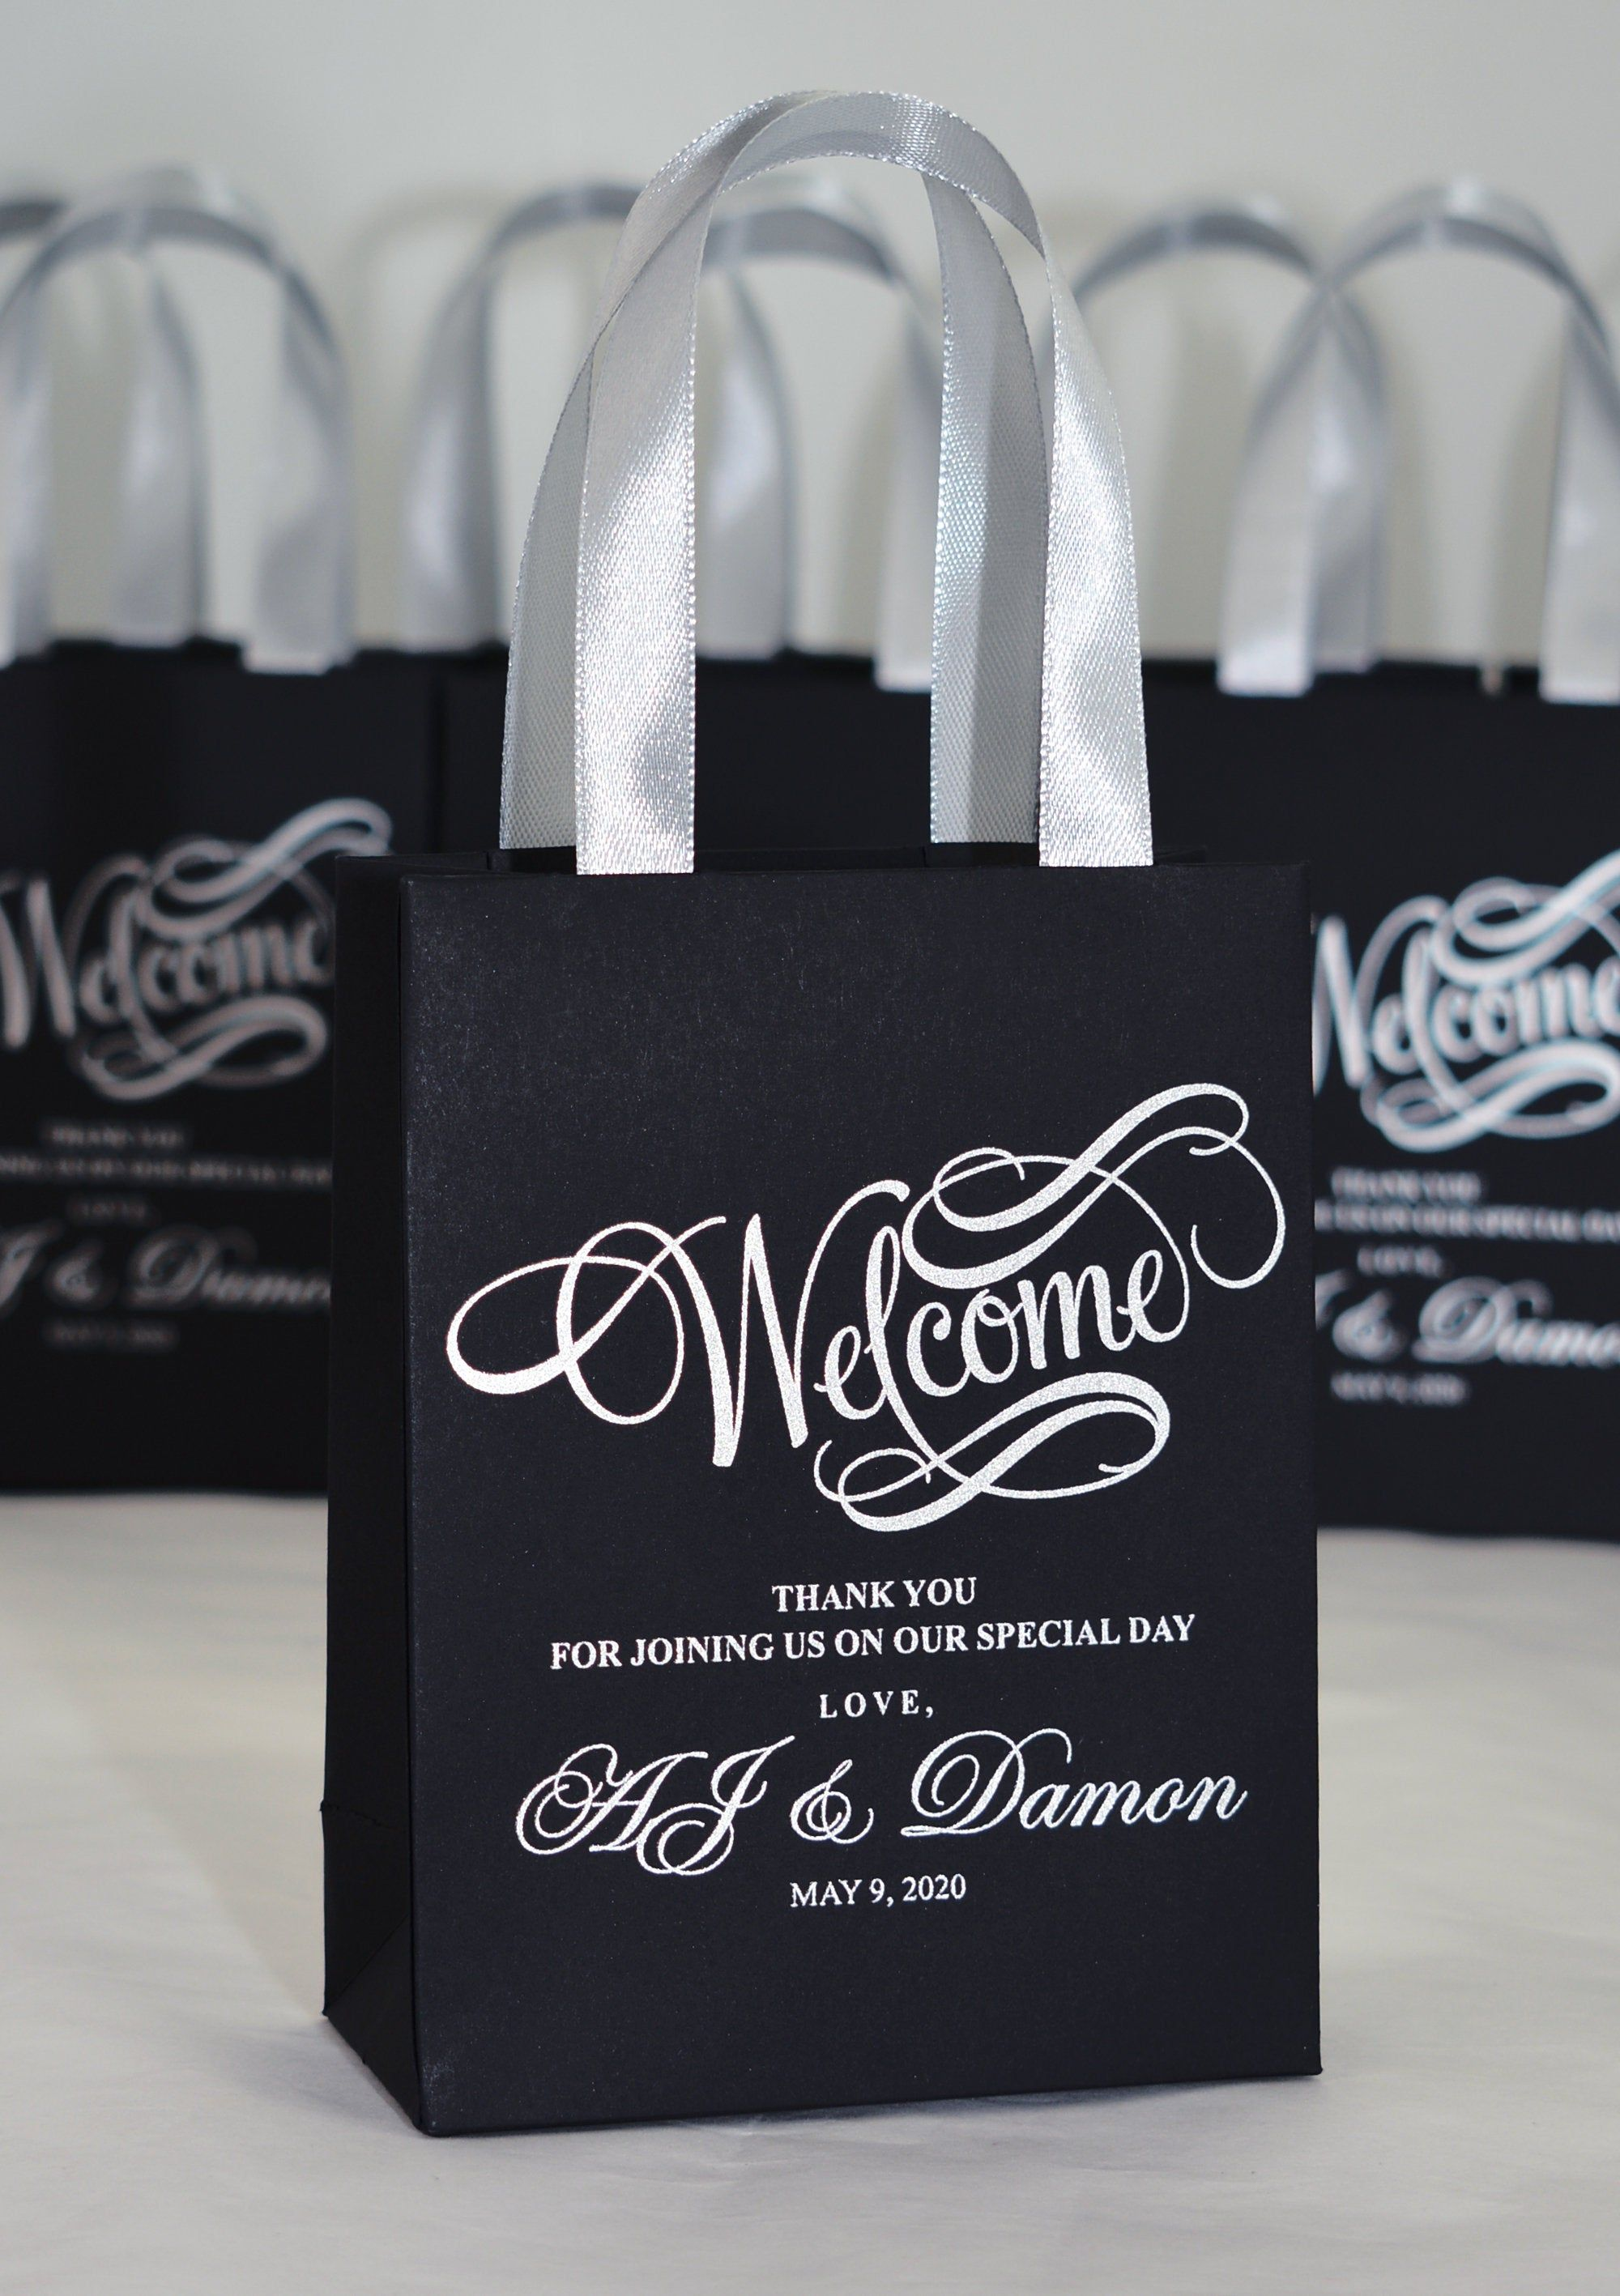 25 Elegant Wedding Welcome Bags For Favor For Guests Etsy In 2020 Wedding Party Gift Bags Wedding Goodie Bags Wedding Welcome Bags